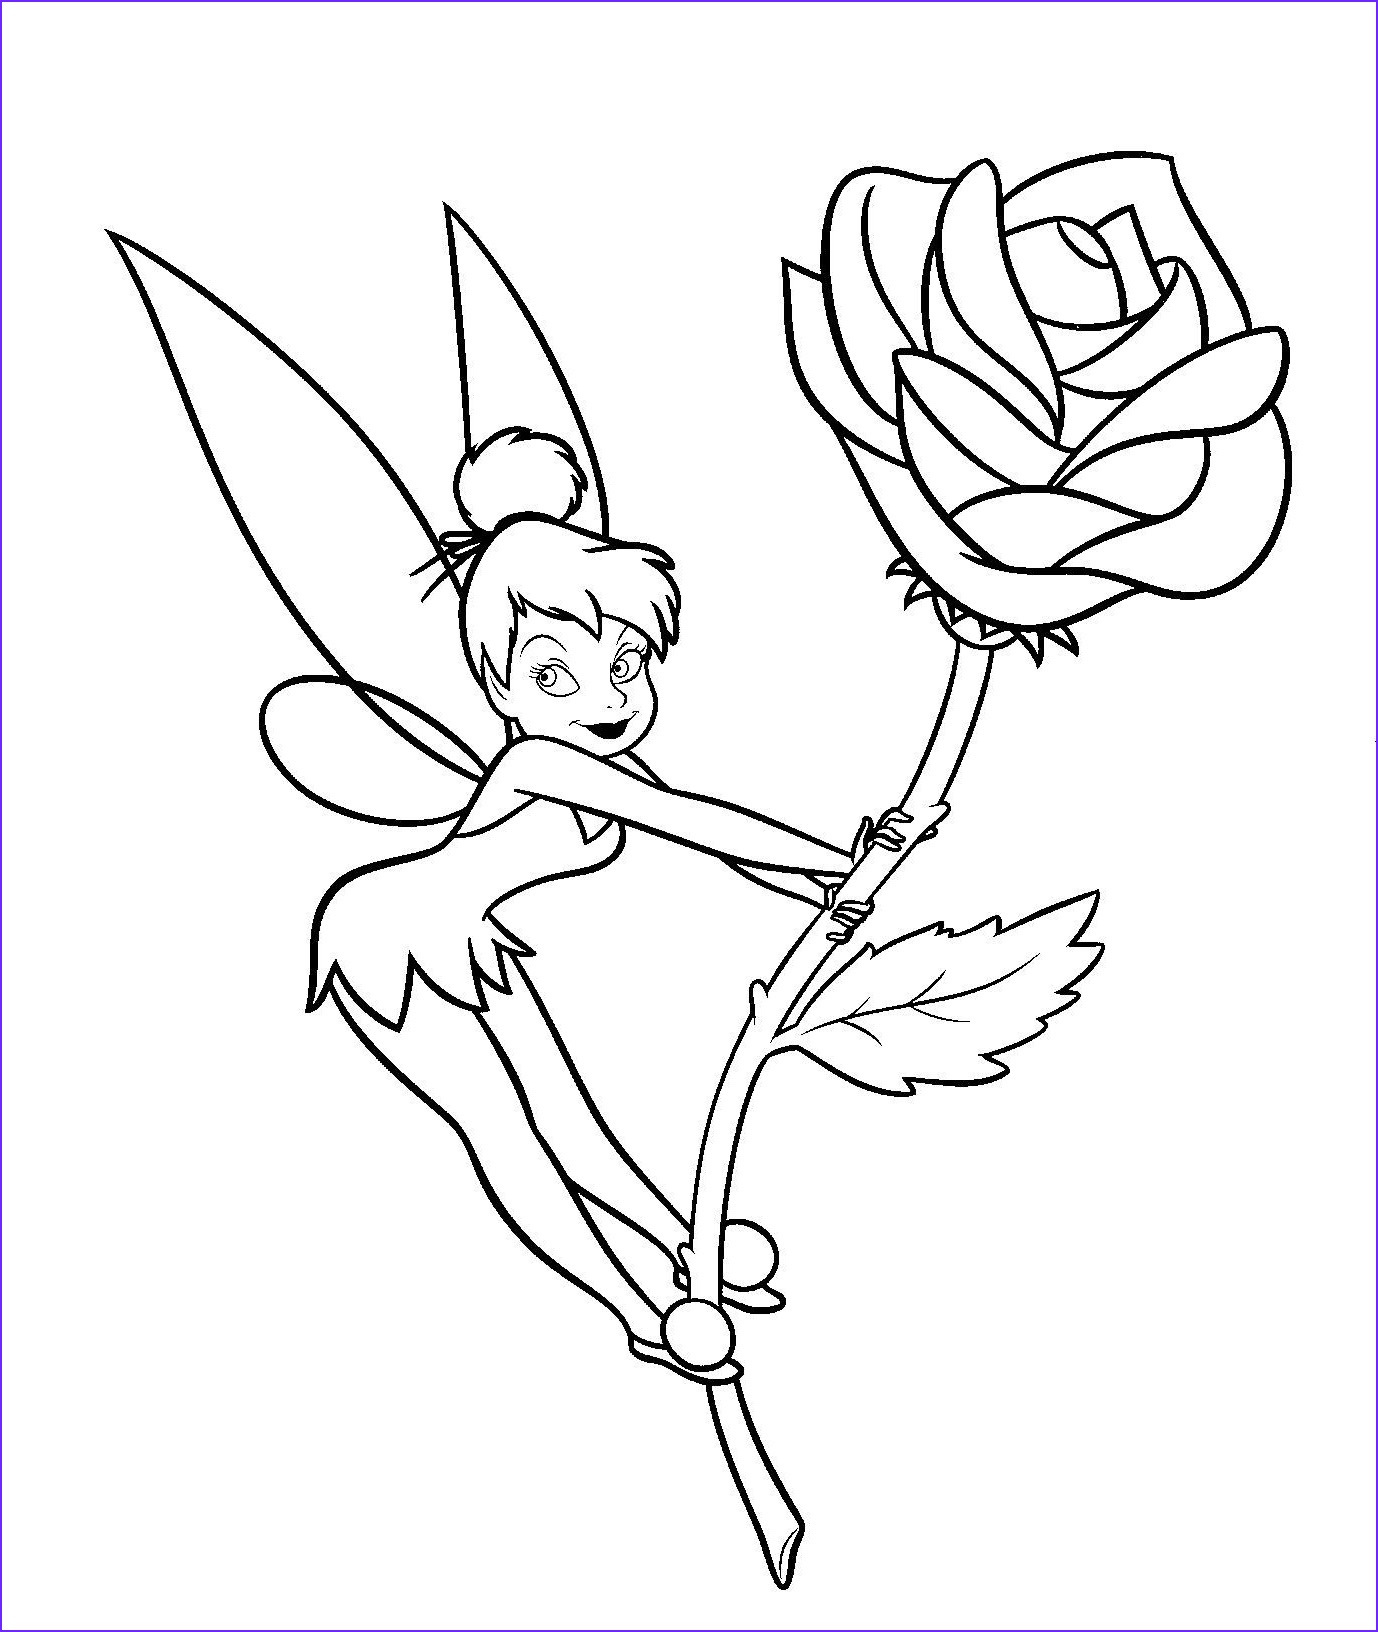 Tinkerbell Coloring Book Inspirational Photos Tinkerbell Coloring Pages